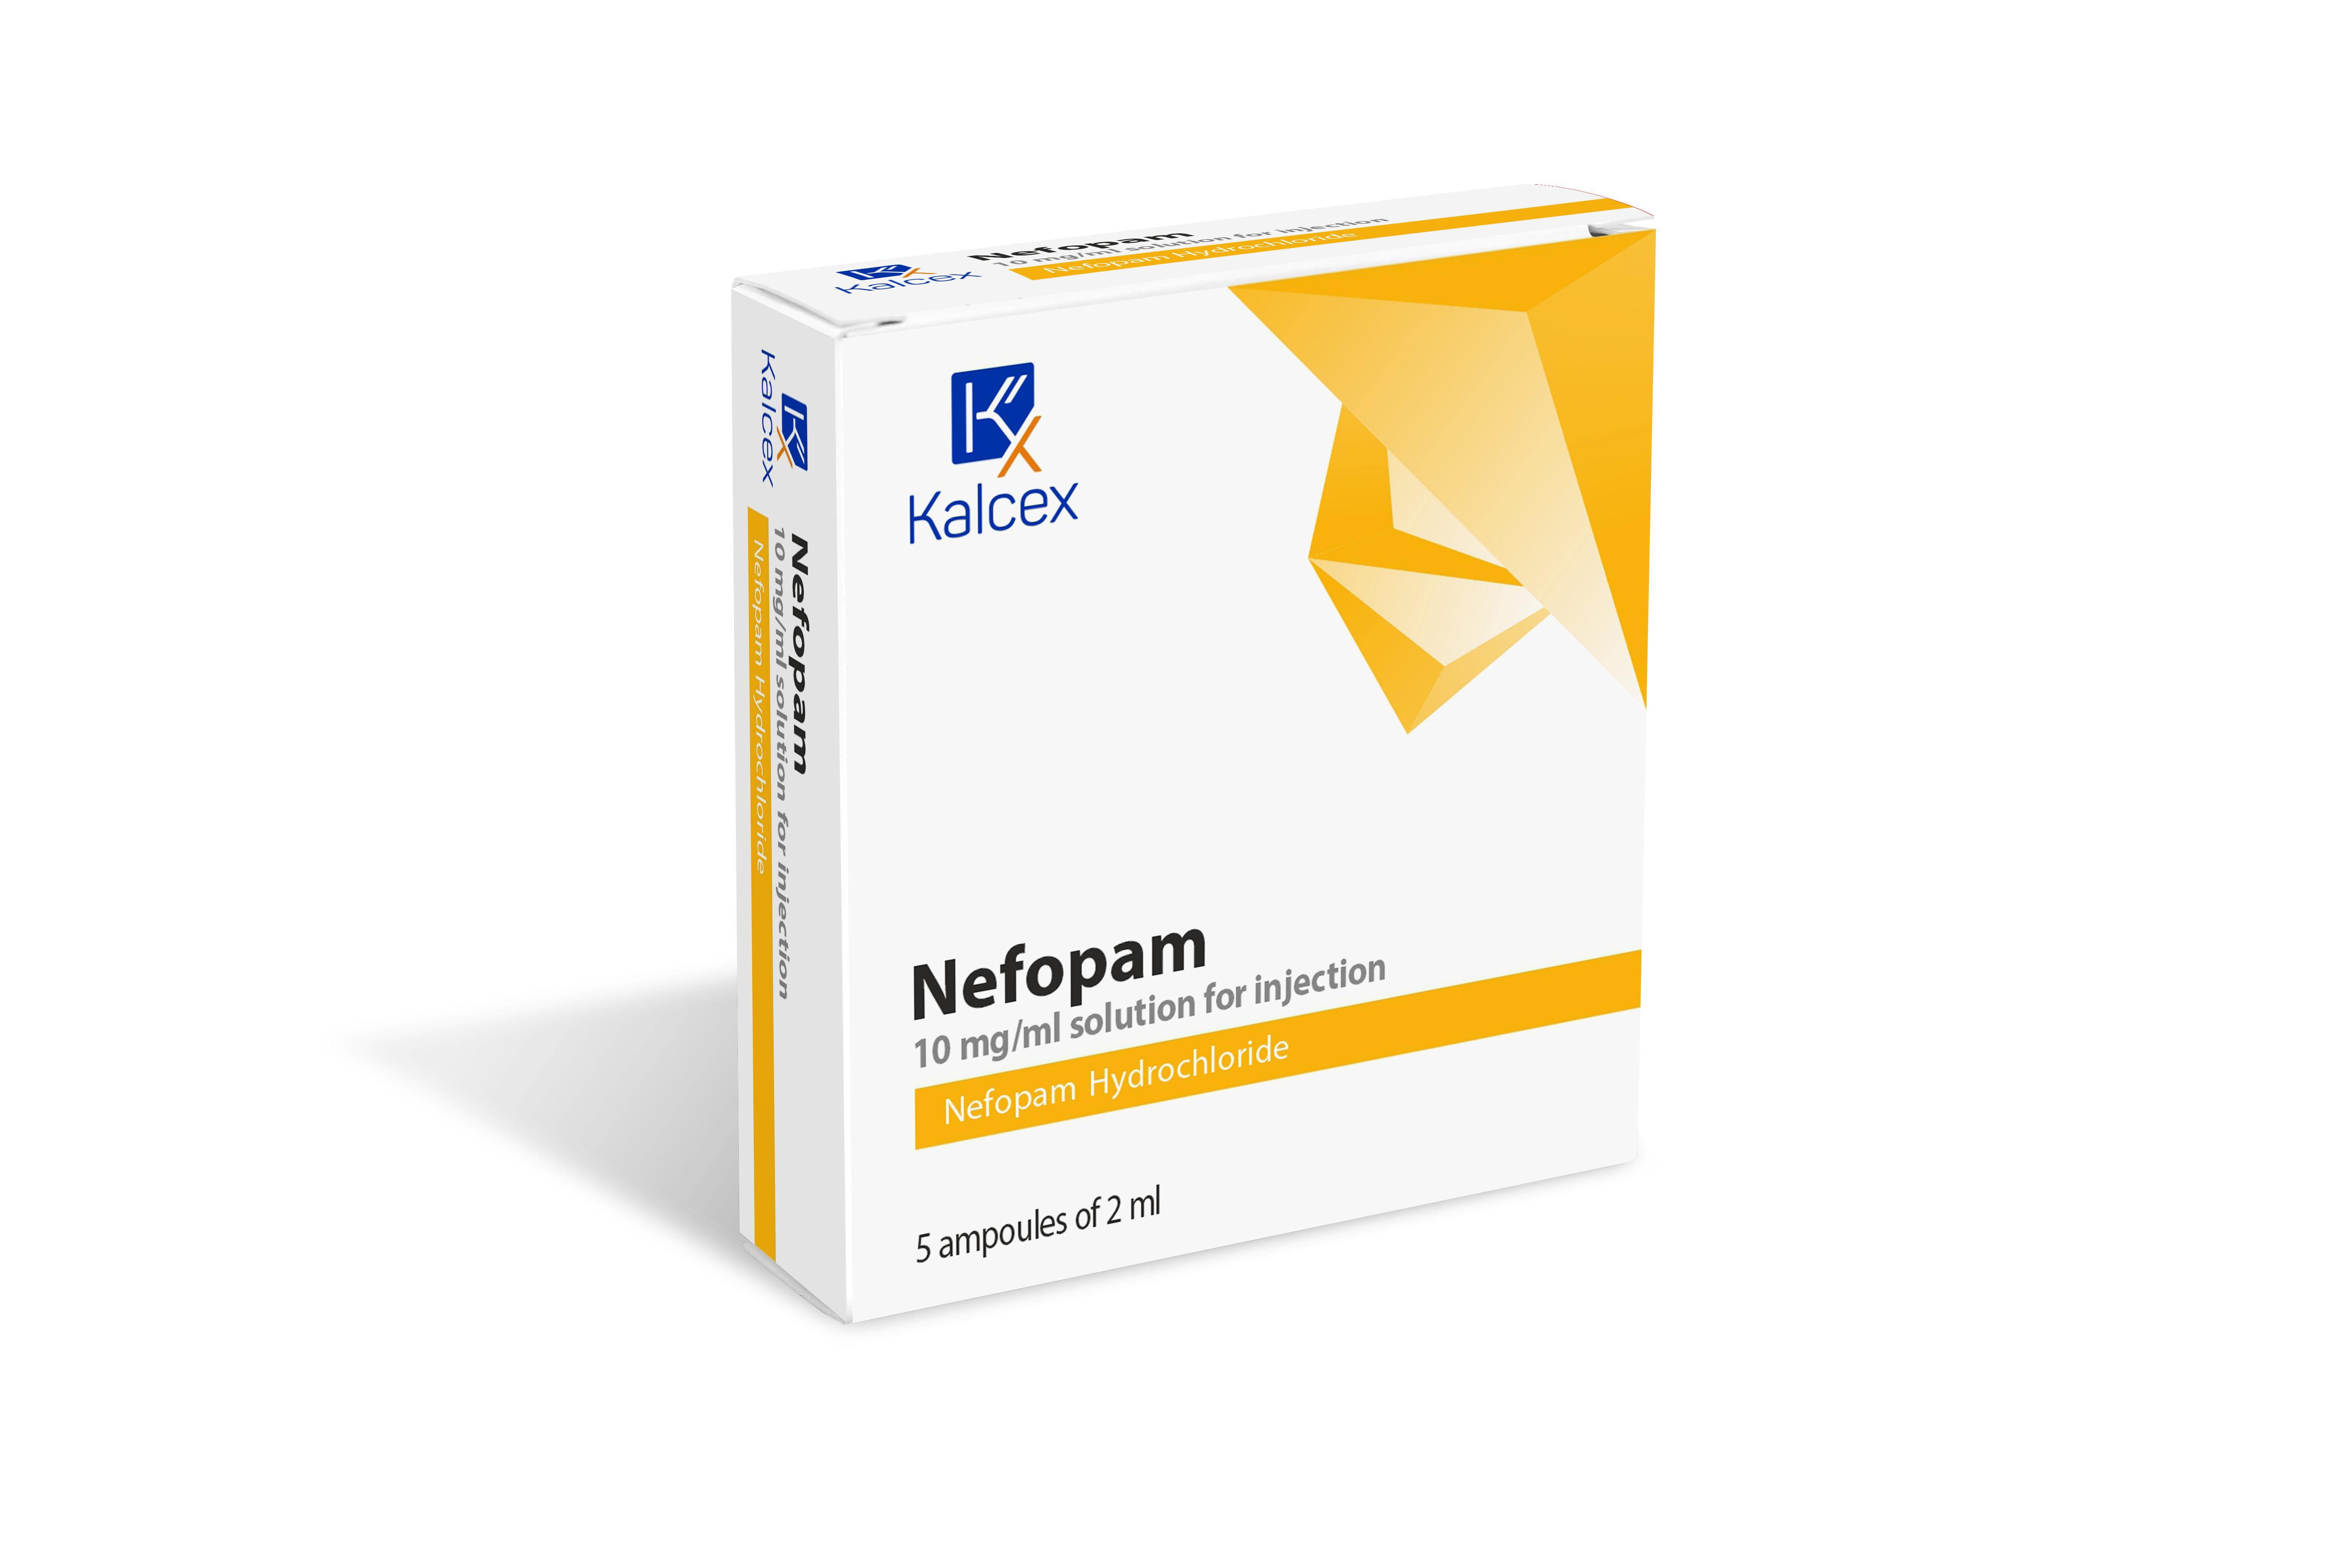 Nefopam hydrochloride  injection*